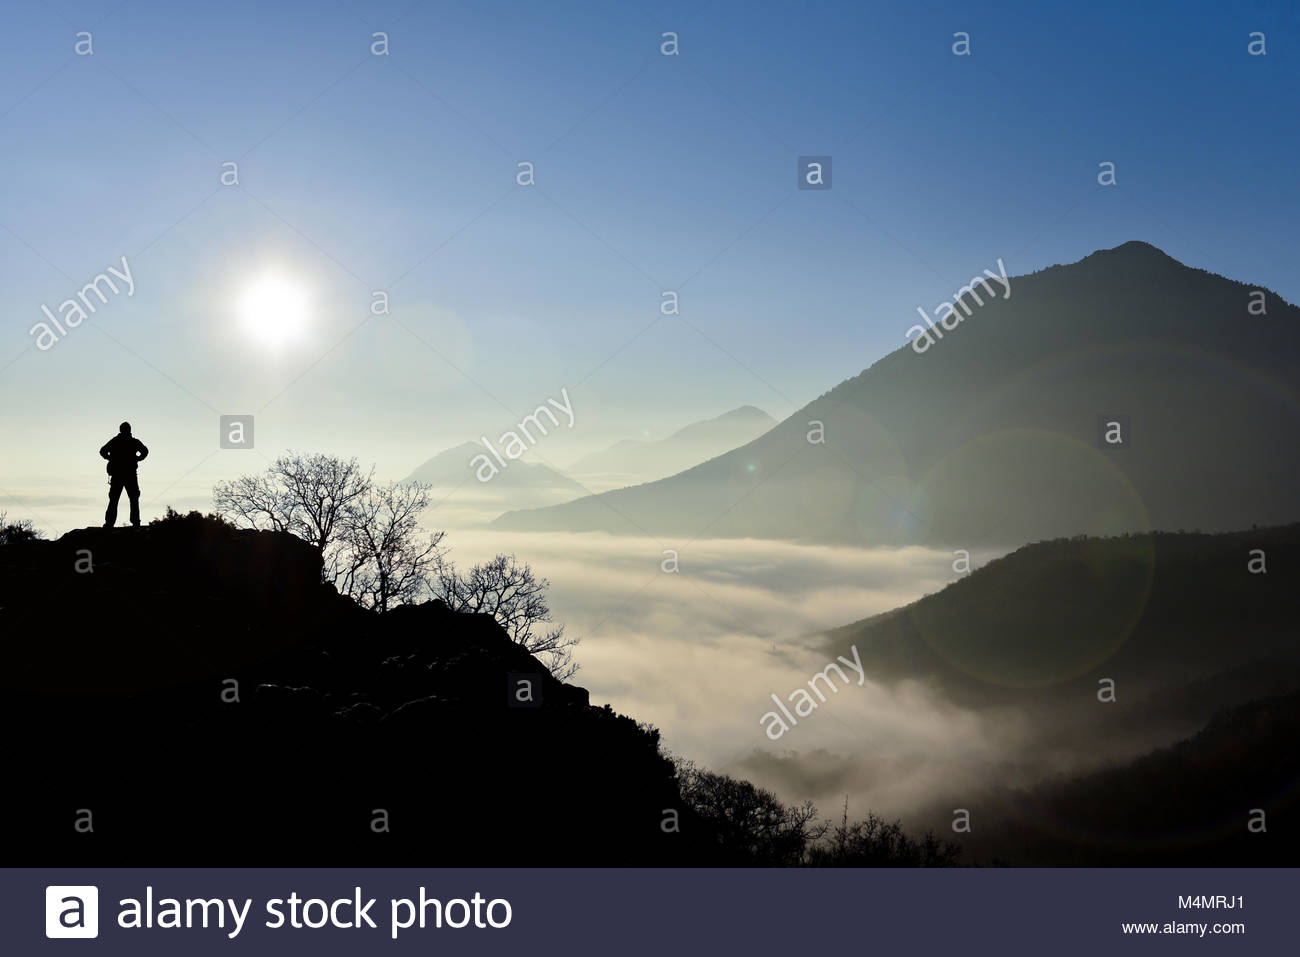 Sunrising in foggy weather - Stock Image